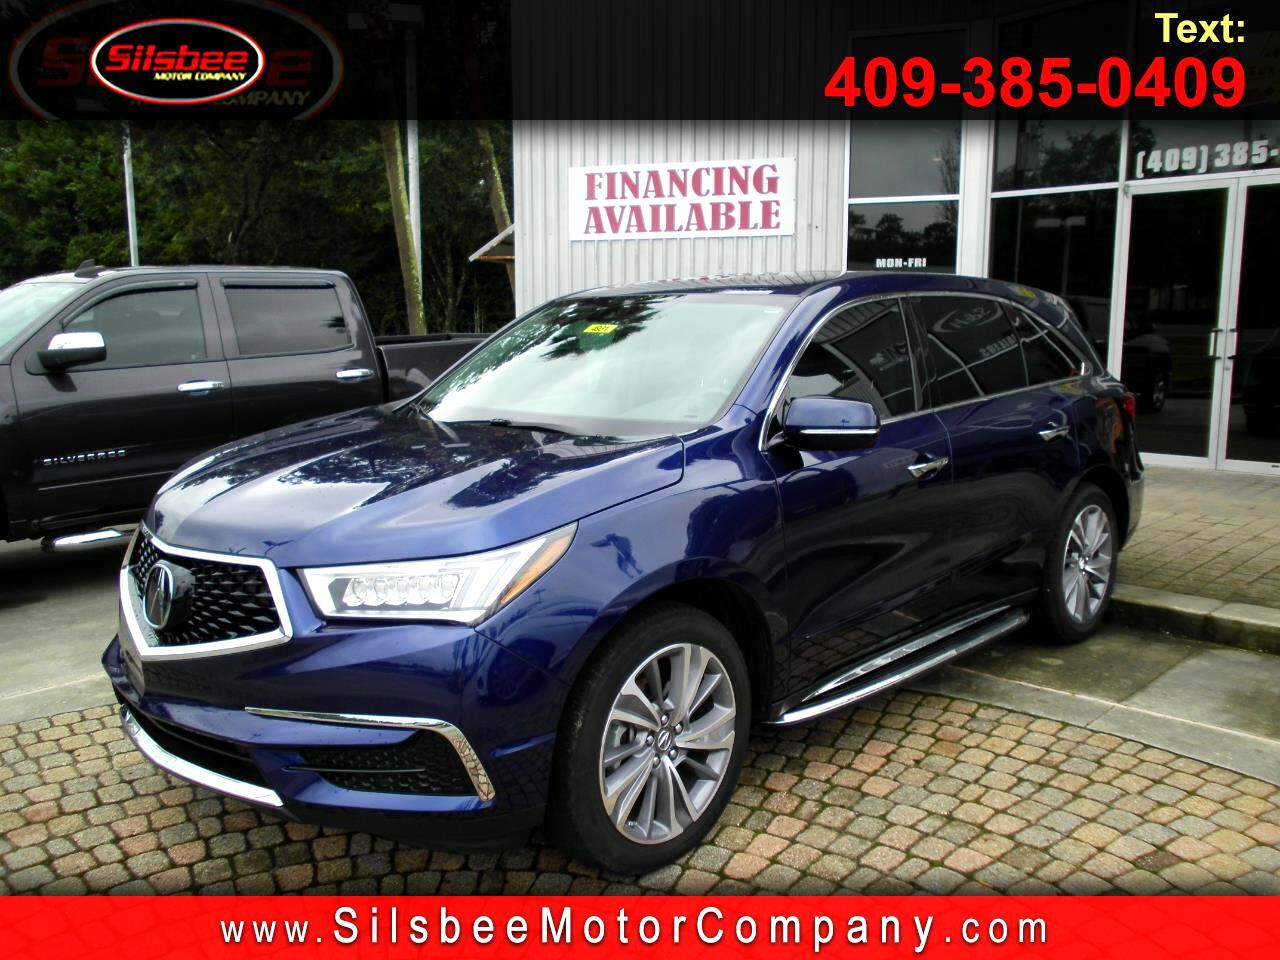 Silsbee Motor Company >> Start your deal with Silsbee Motor Company in Silsbee, TX